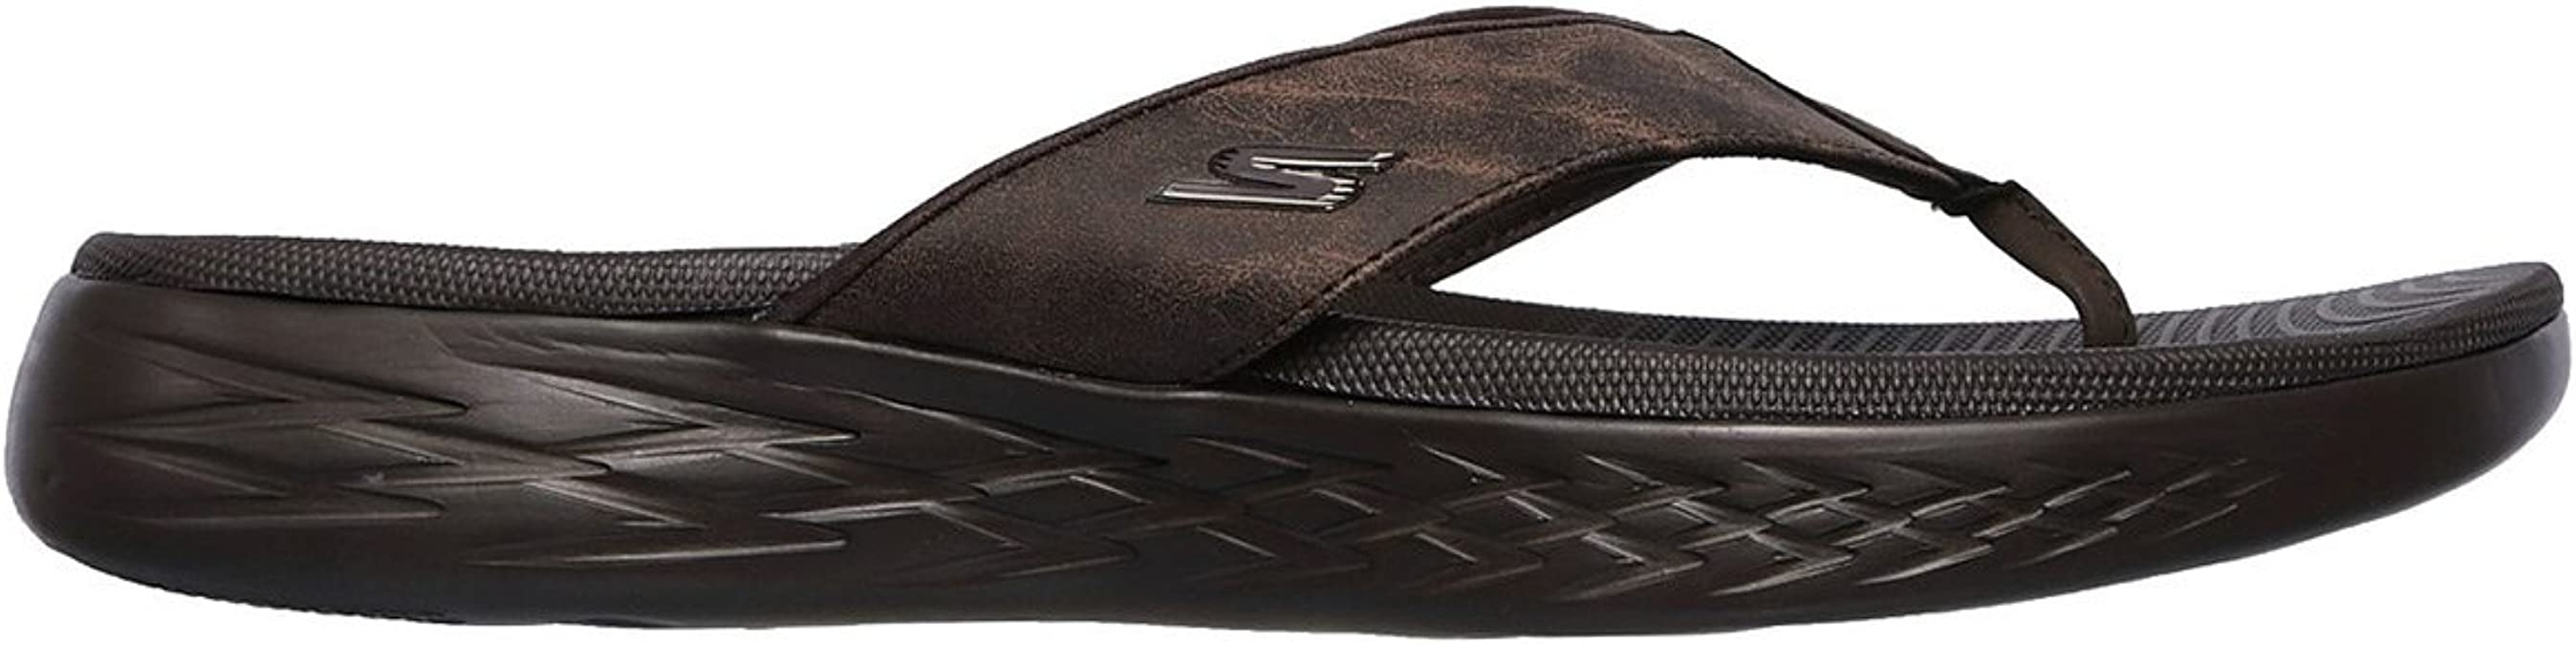 Skechers on The GO 600 Seaport Sandales Tongs Homme